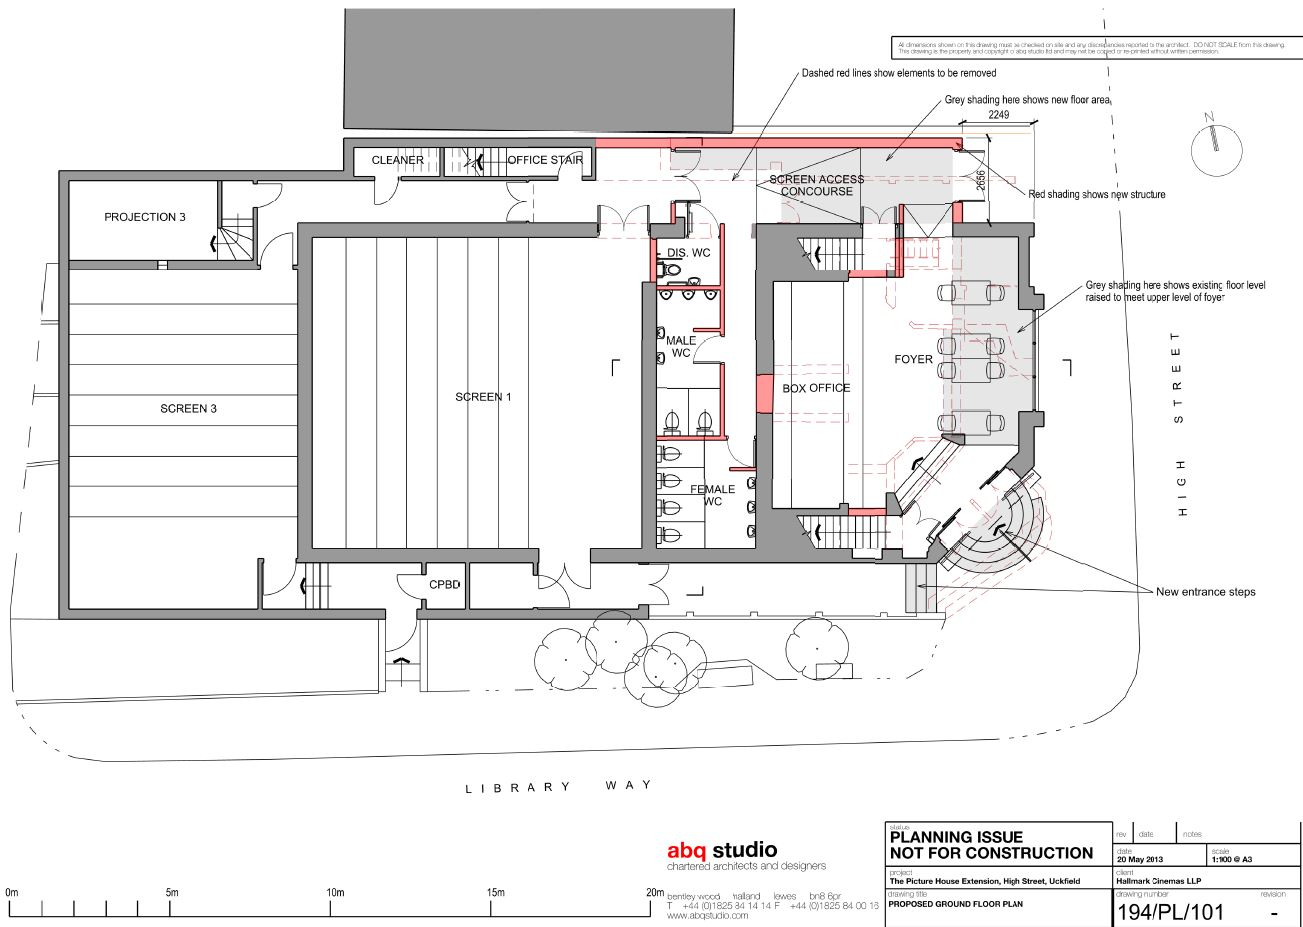 Ground Floor Plans Cinema Owner Confidential